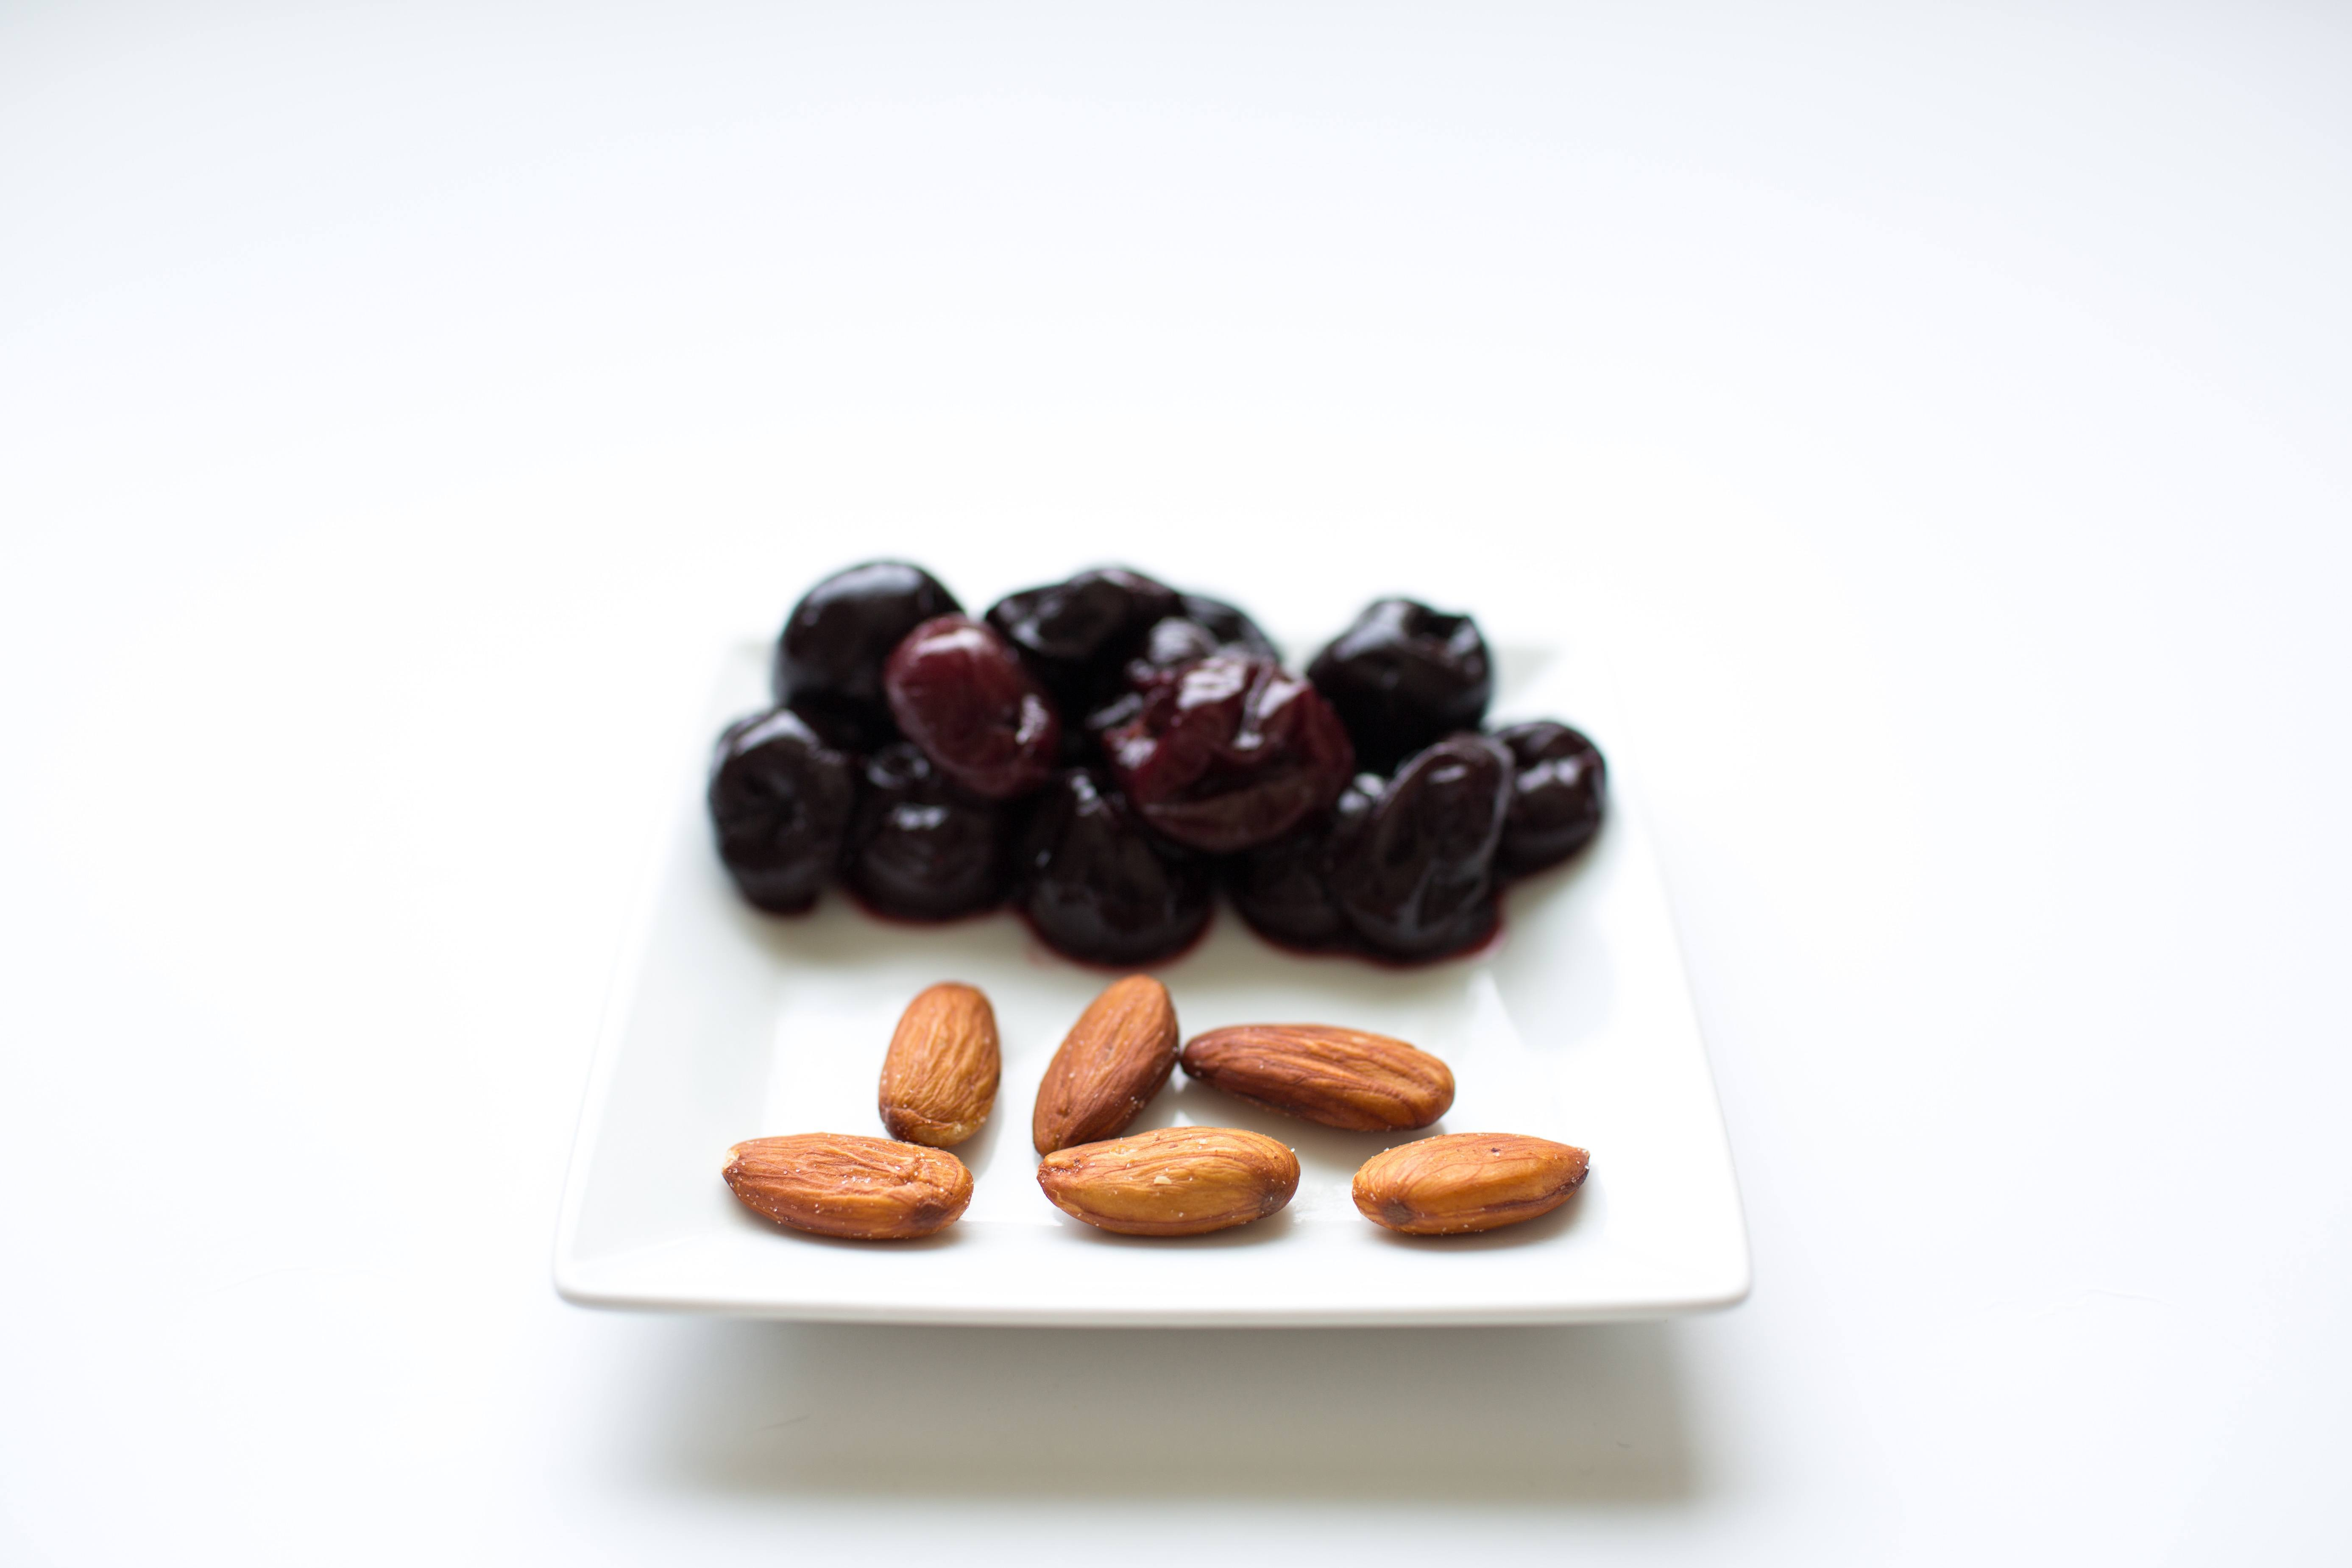 100 calorie snack cherries and almonds